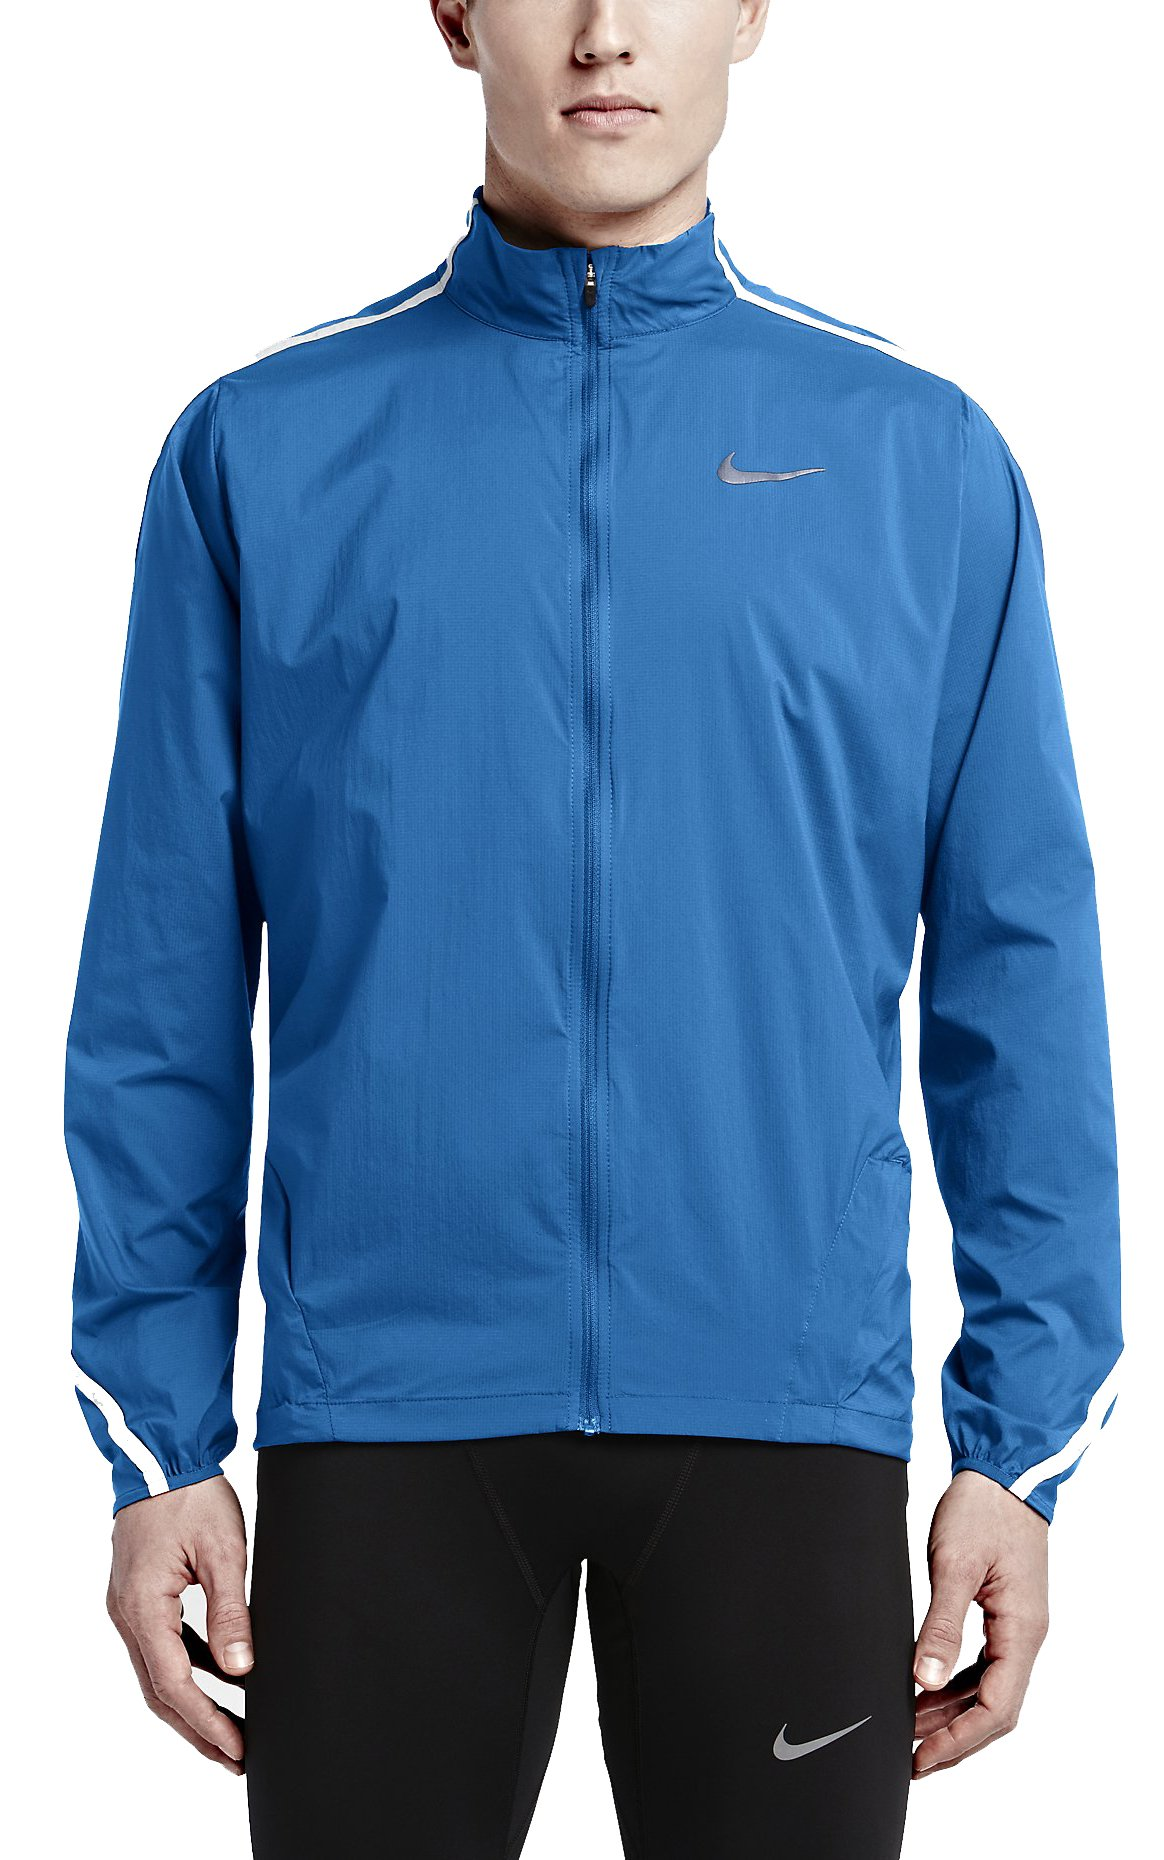 Bunda Nike IMPOSSIBLY LIGHT JKT